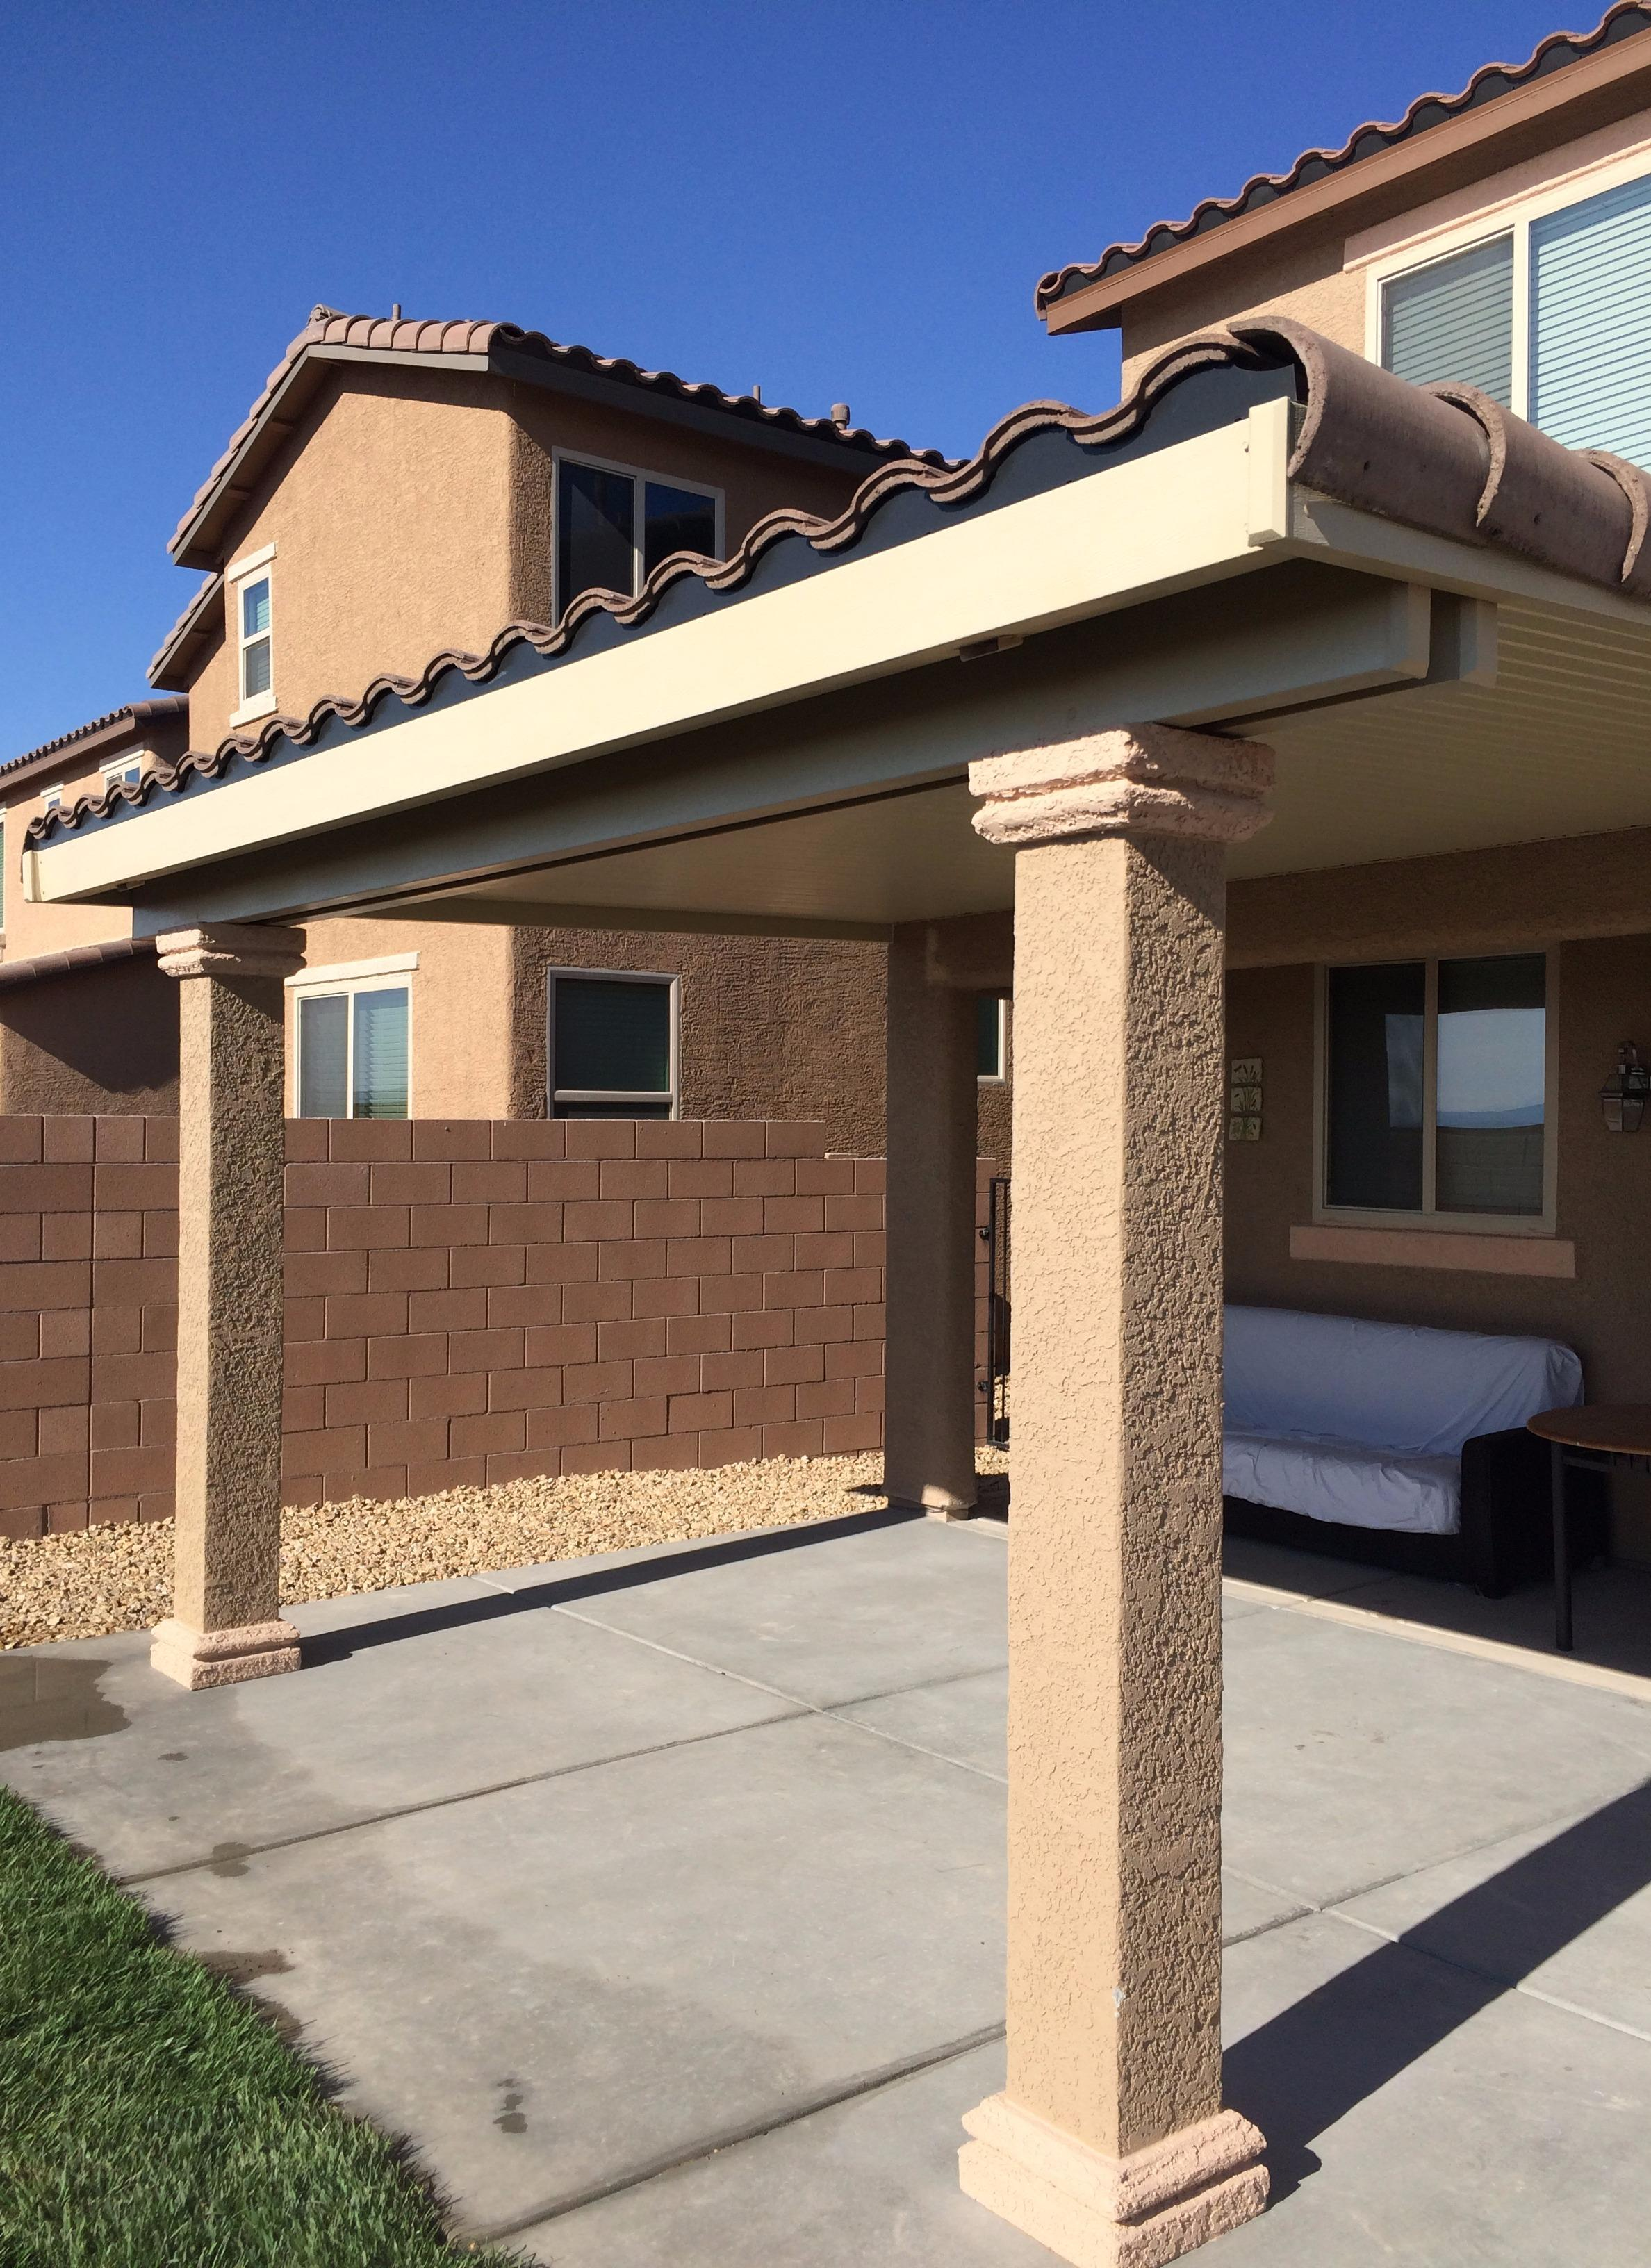 Ultra Patios Solid Alumawood Patio Cover W/ Stucco Post U0026 Cap Tile Trim Las  Vegas